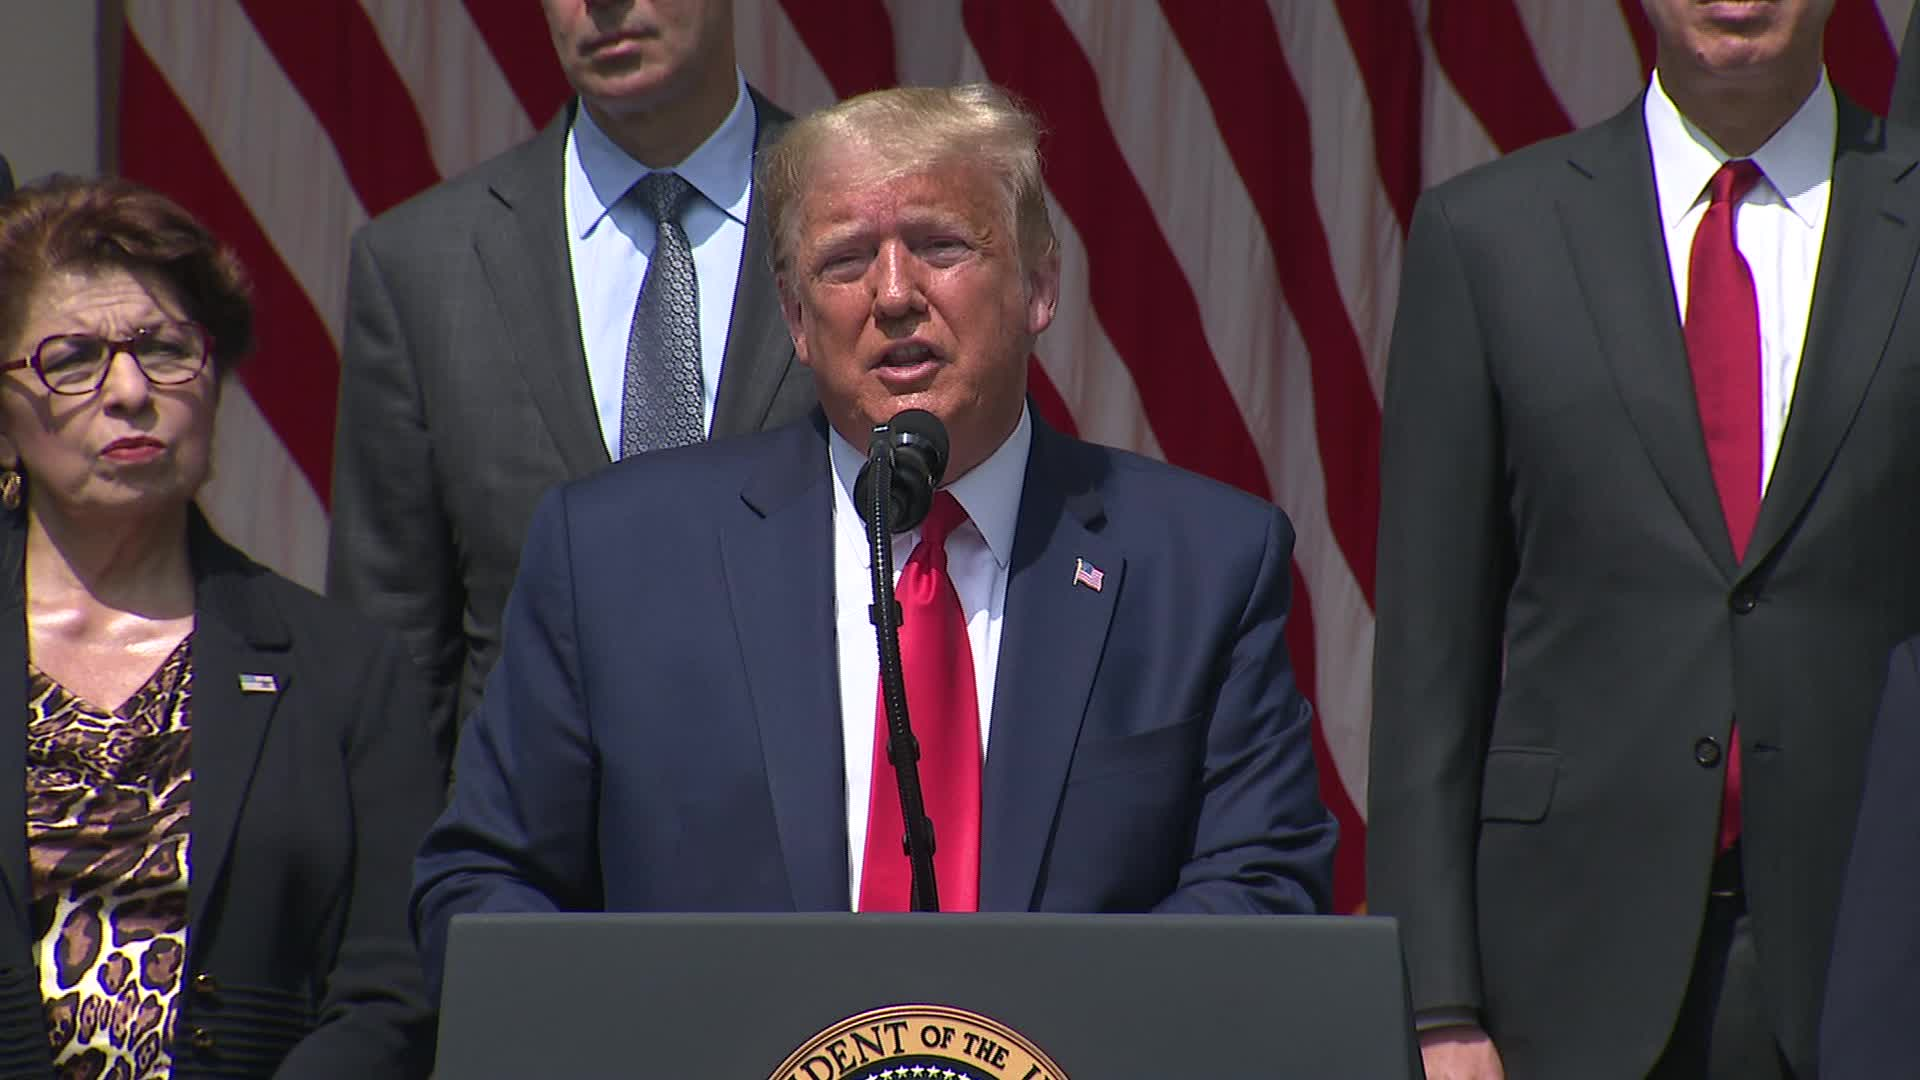 President Trump speaks at a news conference at the White House in Washington, on June 5.